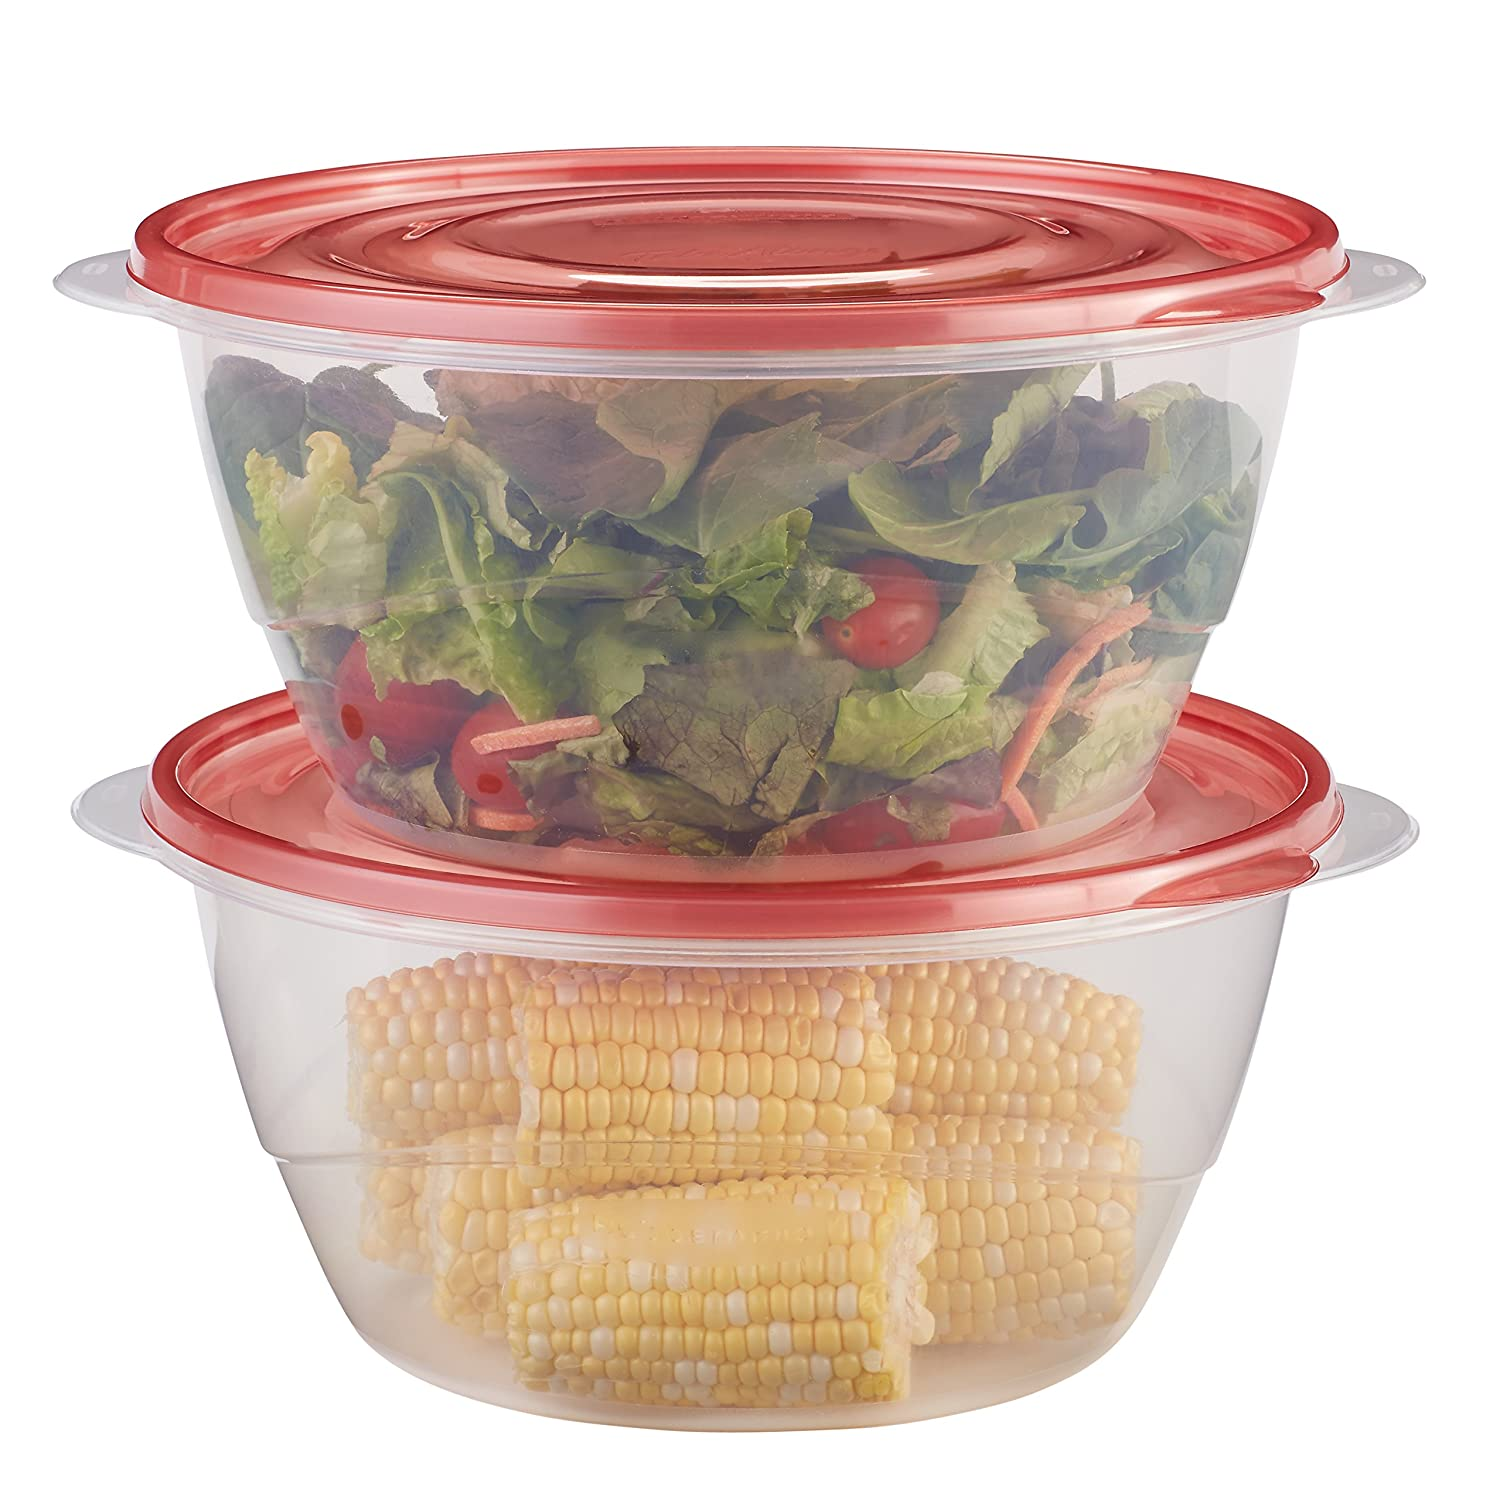 Amazoncom Rubbermaid TakeAlongs Serving Bowl Food Storage